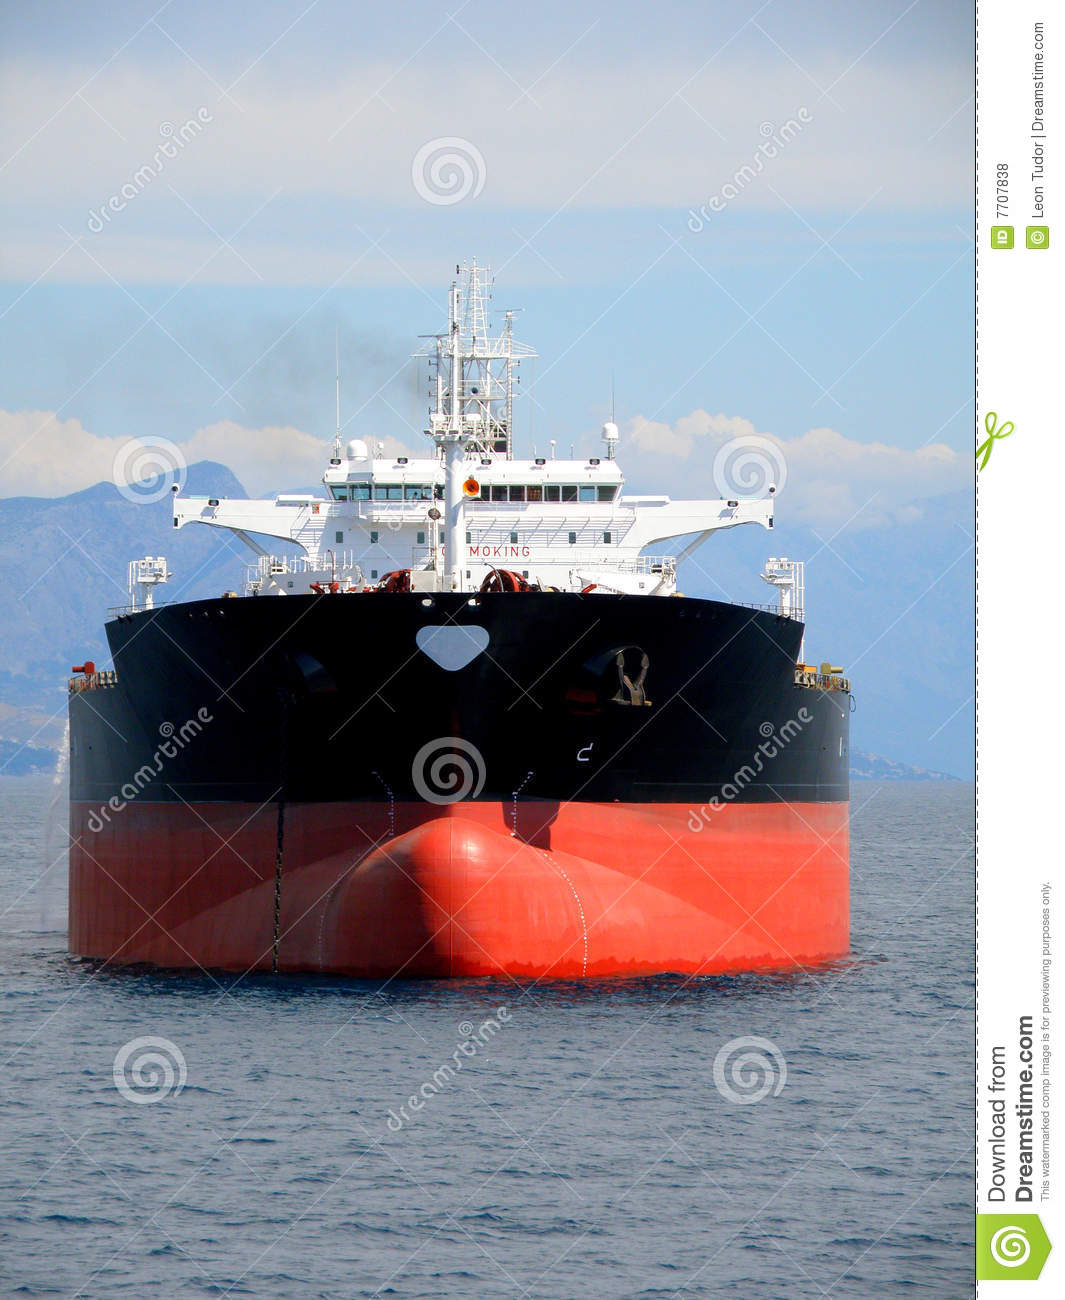 Black Oil Tanker Royalty Free Stock Photos Image 7707838